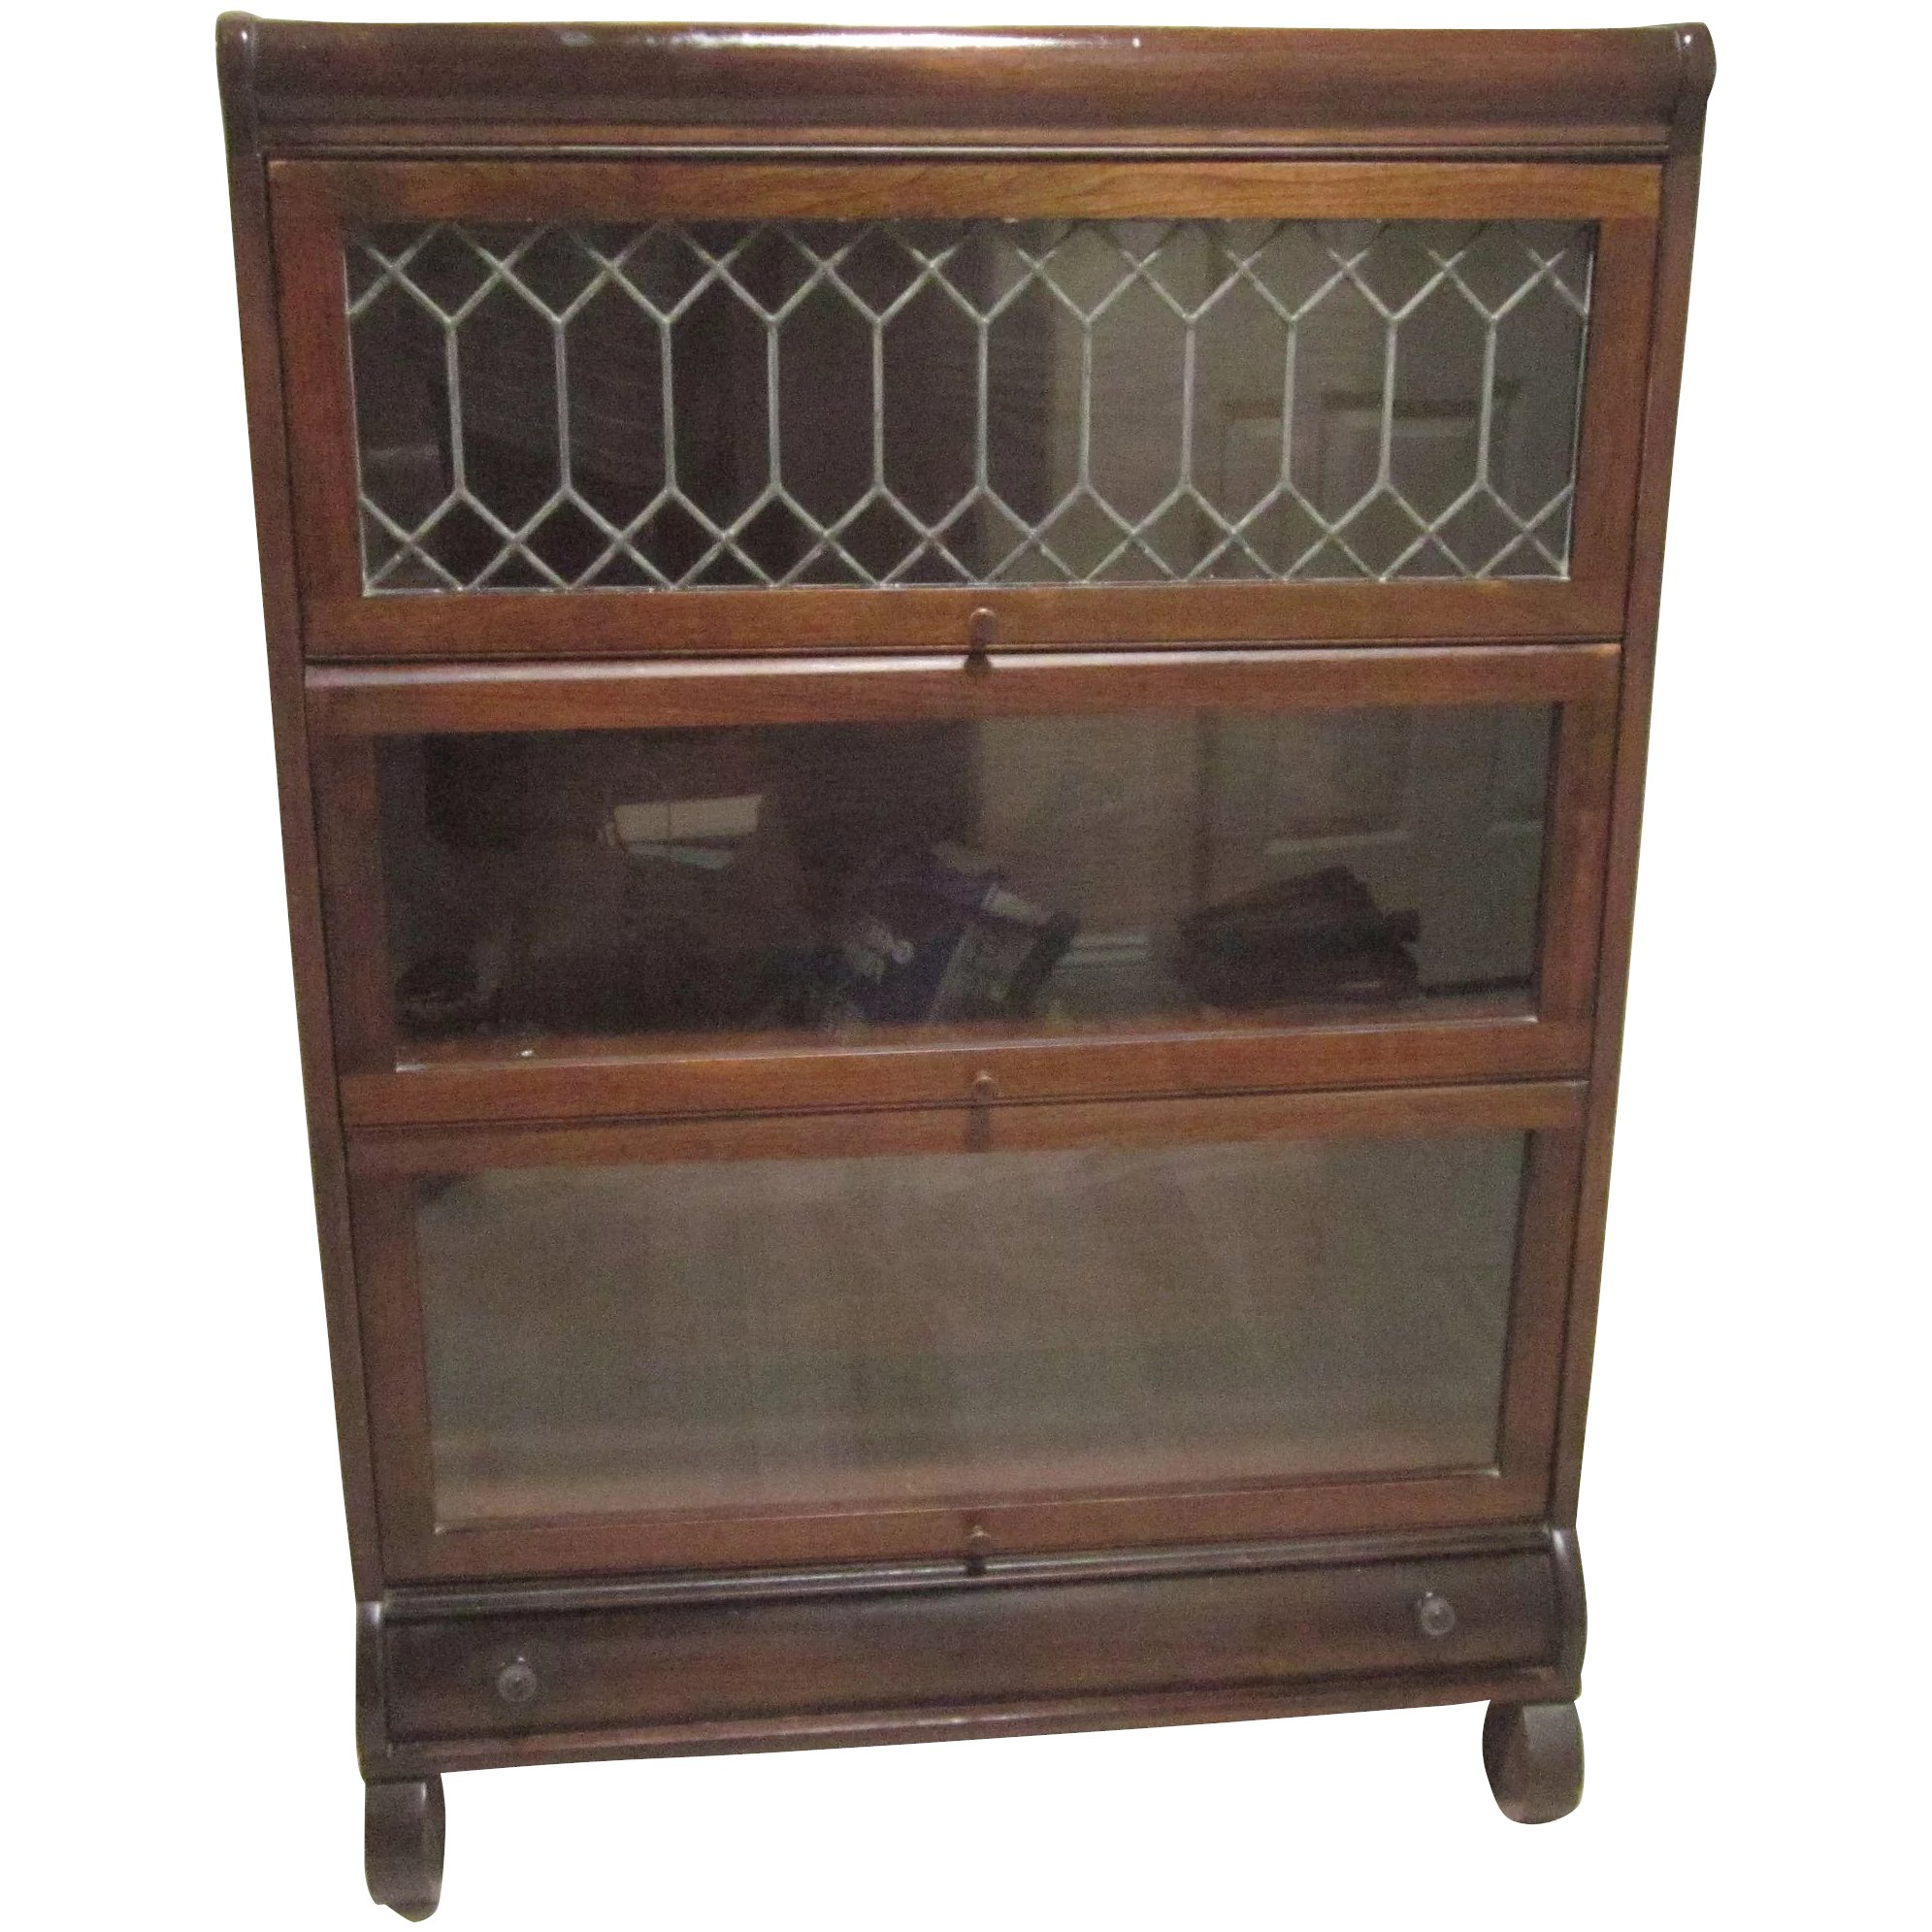 Antique Mahogany Barrister Stacking Bookcase Leaded Glass Drawer Lundstrom Mfg Co New York